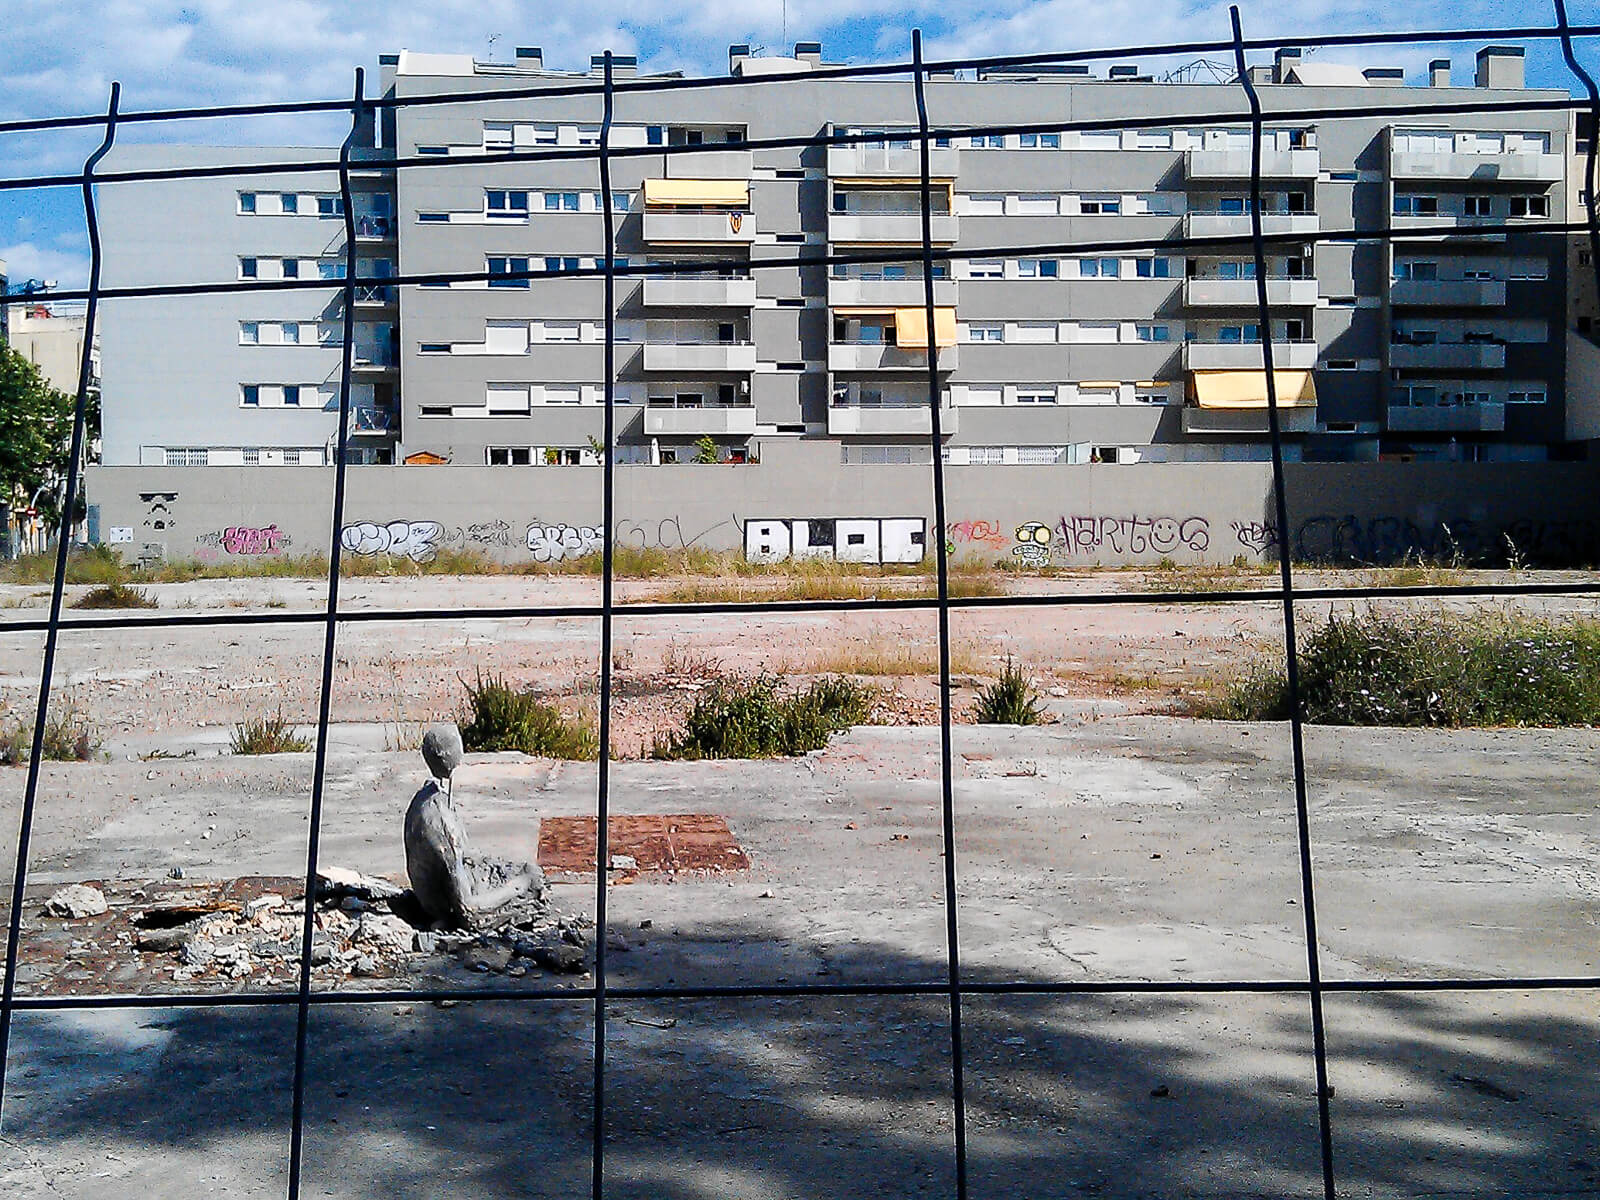 Barcelona Street Photography, building fence, gray beton, stone figure, street art sculpture